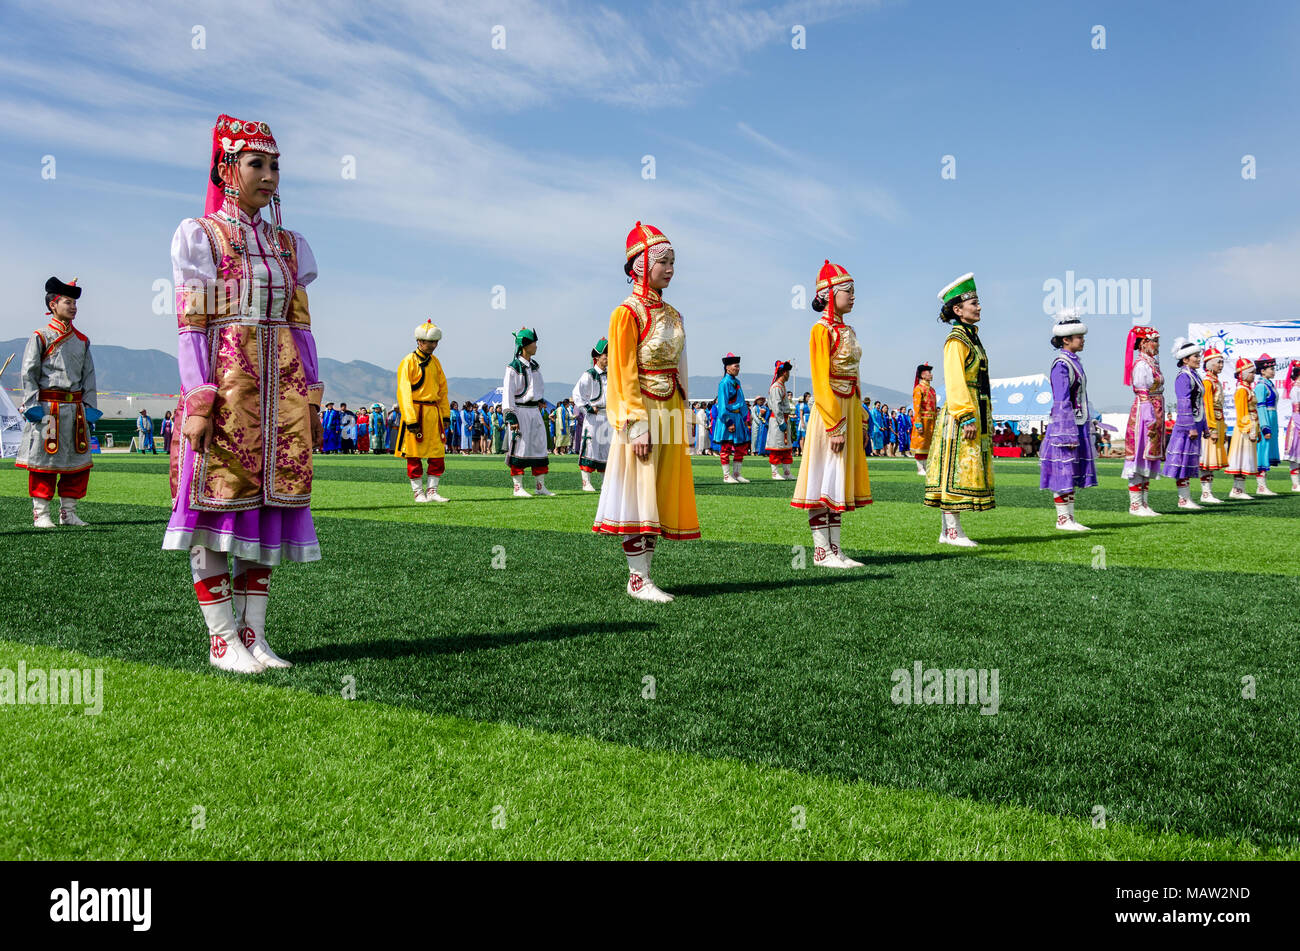 Traditional Costumes at the Naadam Festival Opening Ceremony, Murun, Mongolia - Stock Image